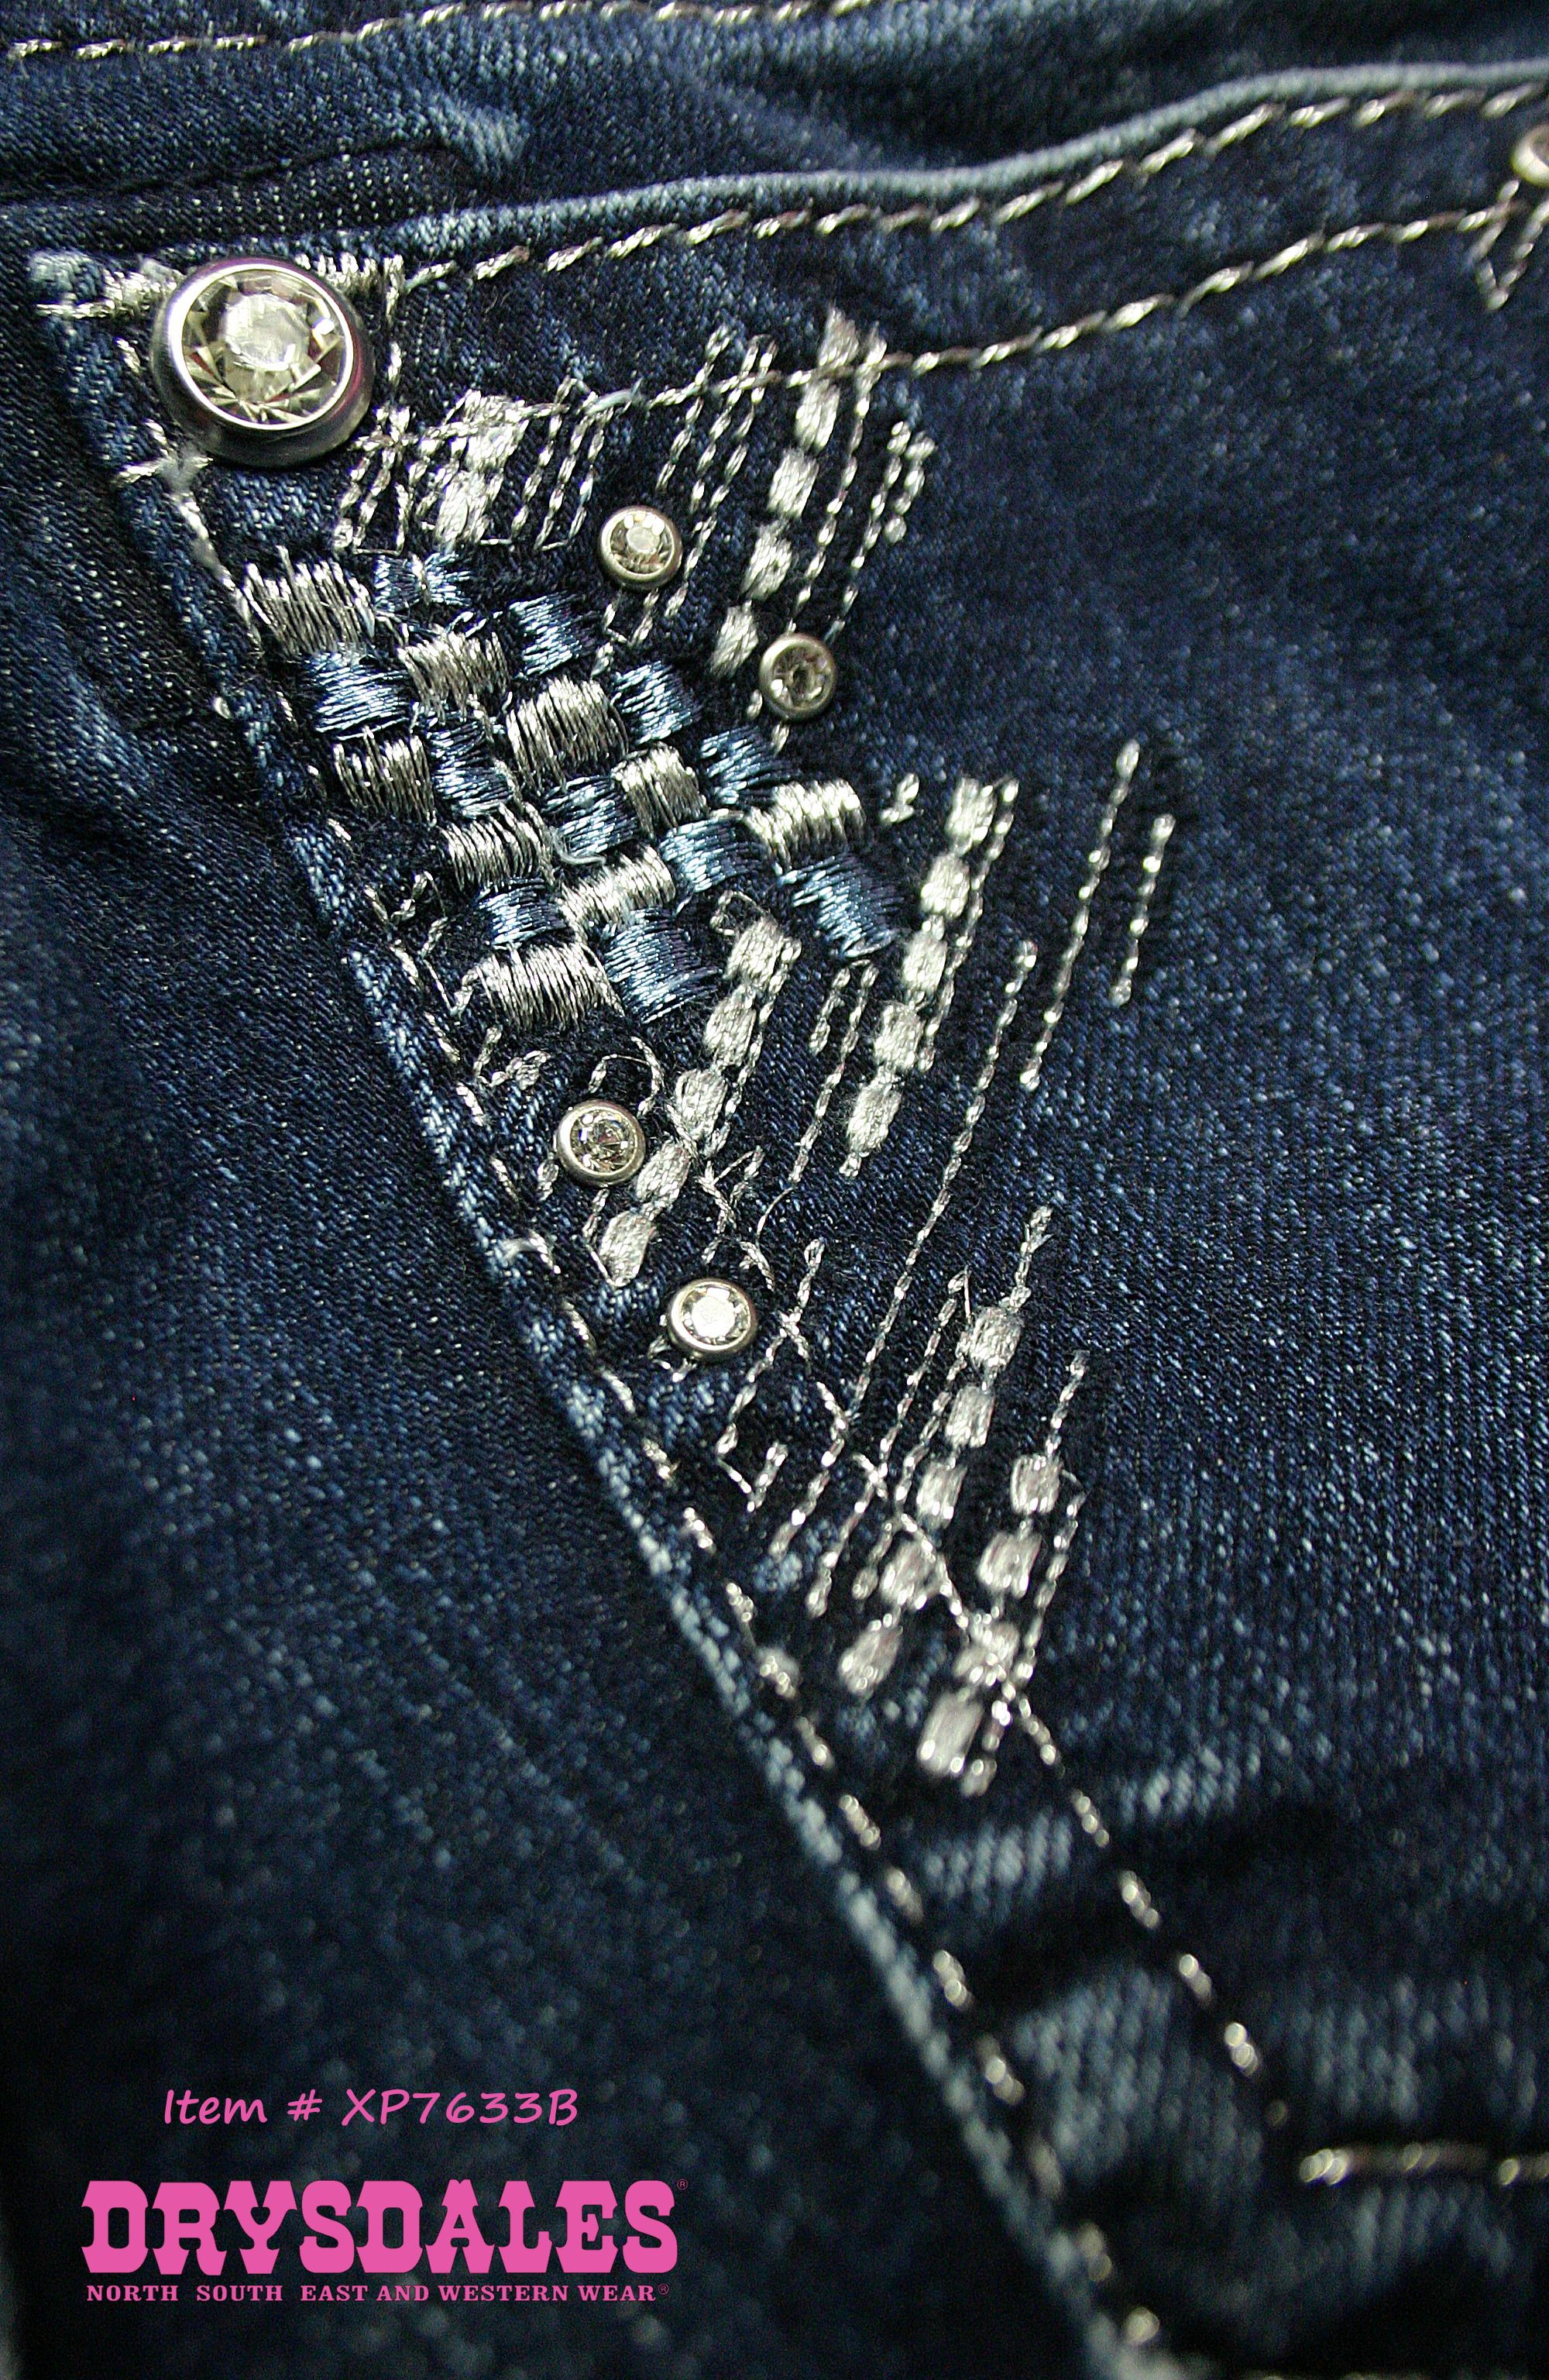 f05a30917f4 Silver and blue abstract embroidery and rhinestone studs Miss Me Women's  Medium Wash Relaxed Fit Boot Cut Jeans Item #:XP7633B #DenimBling back  pocket ...